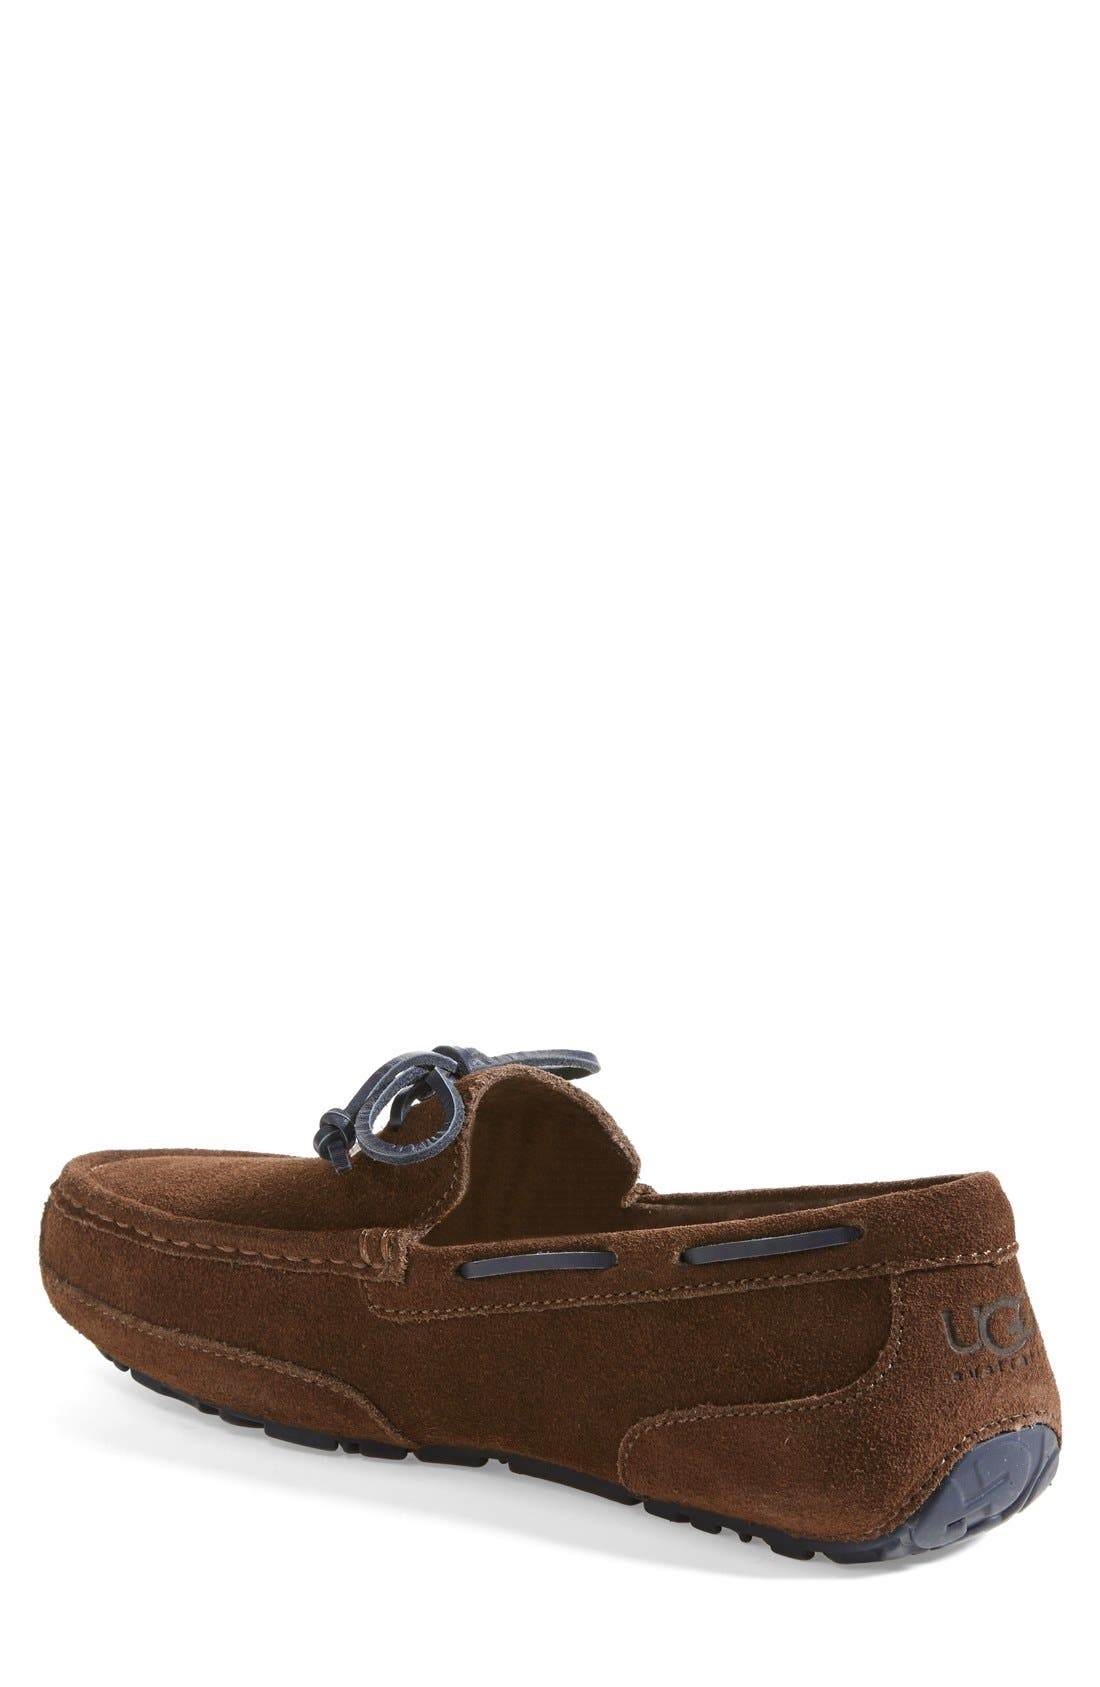 'Chester' Driving Loafer,                             Alternate thumbnail 22, color,